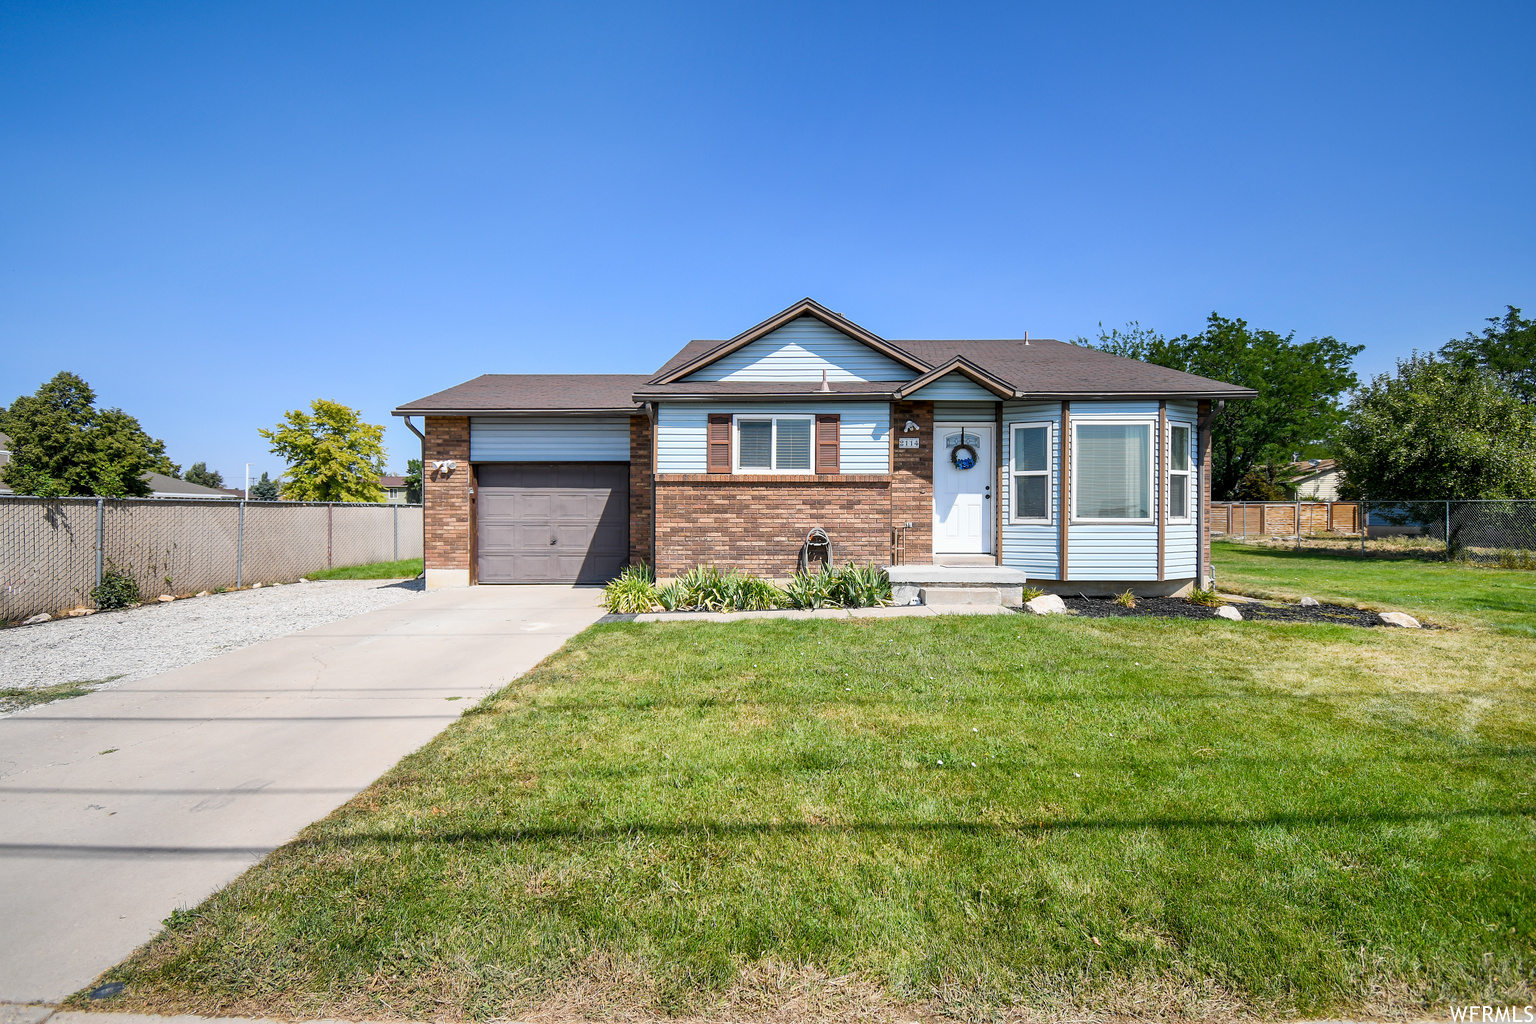 2114 W GORDON AVE, Layton UT 84041